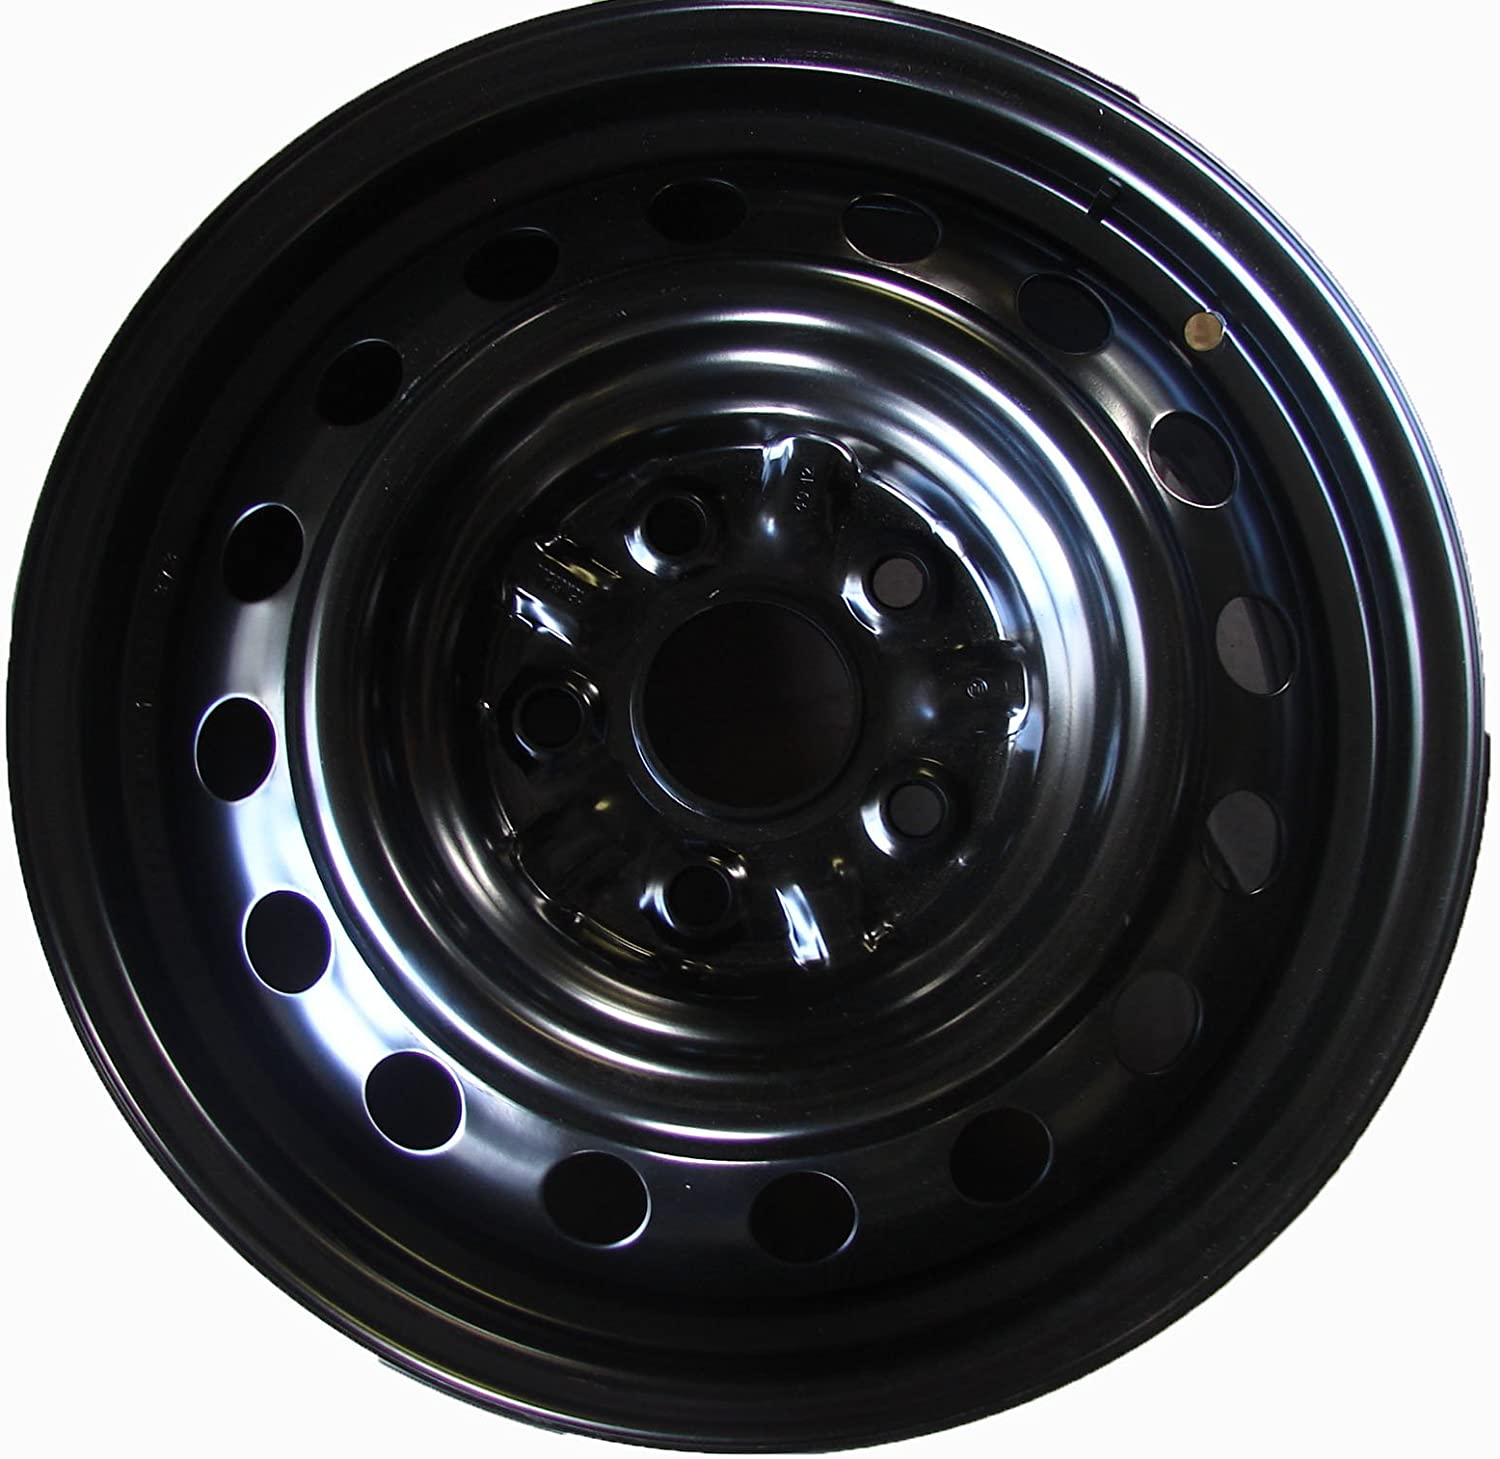 Exact OEM Replacement Road Ready Car Wheel For 1995-2004 Toyota Avalon 1992-2001 Toyota Camry Lexus ES300 1999-2003 Toyota Solara 15 Inch 5 Lug Black Steel Rim Fits R15 Tire Full-Size Spare